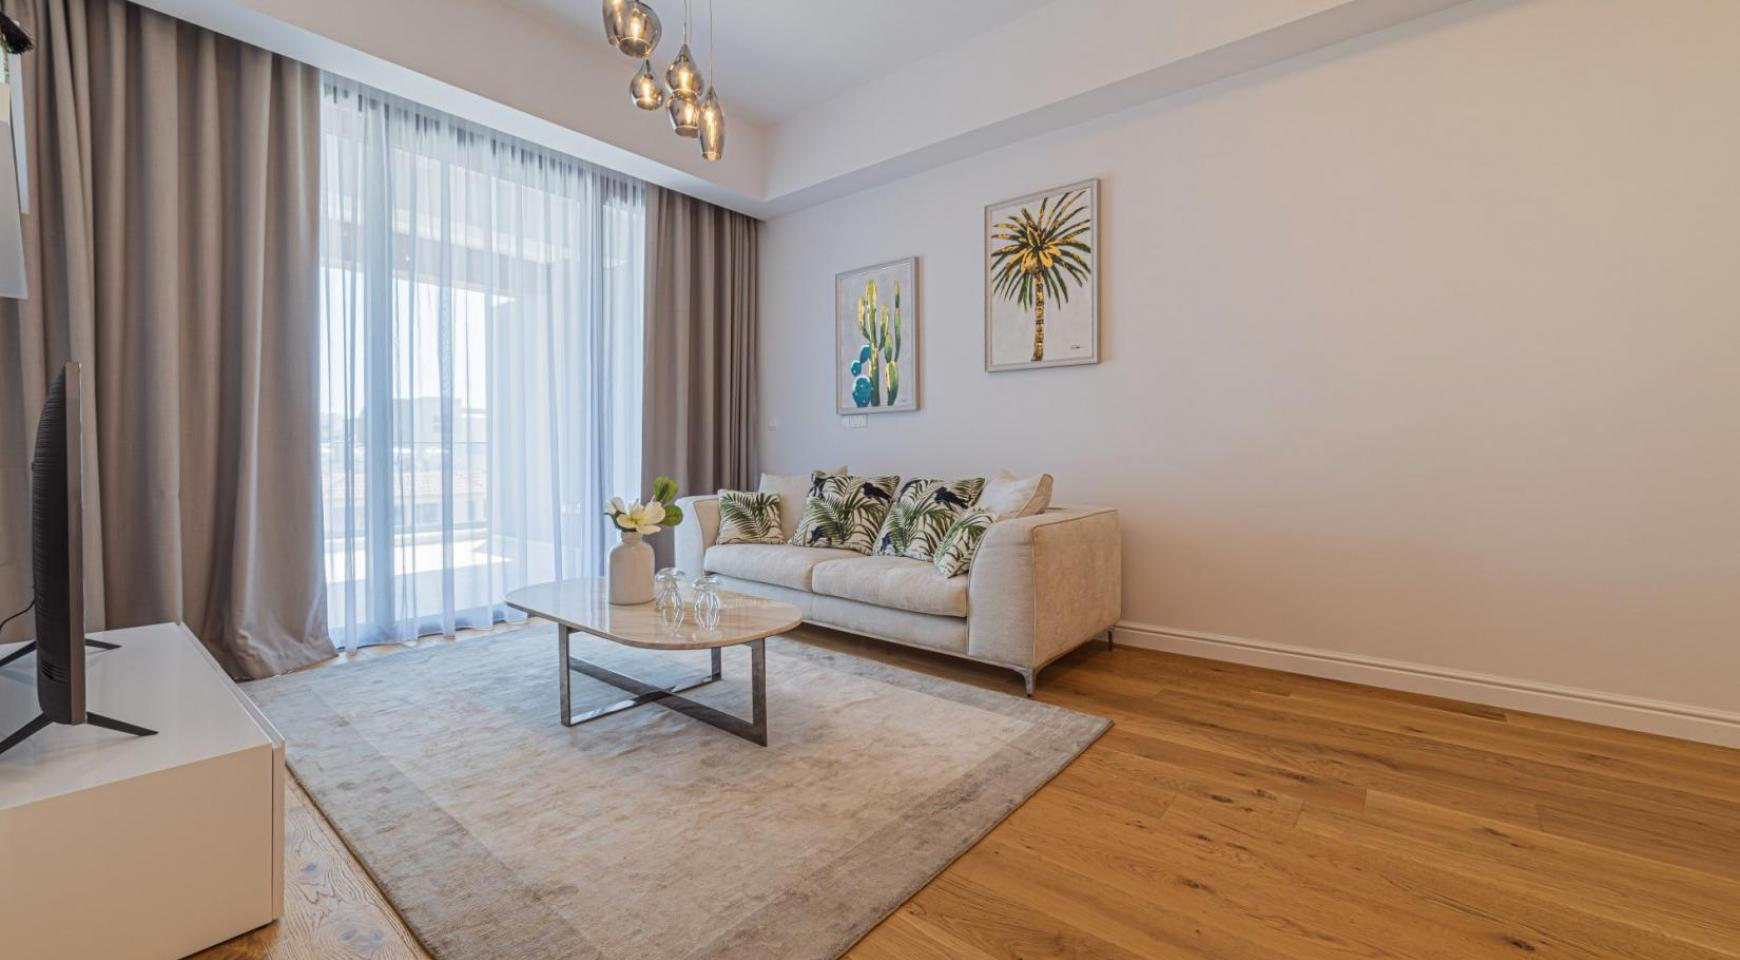 Hortensia Residence, Apt. 201. 2 Bedroom Apartment within a New Complex near the Sea  - 48